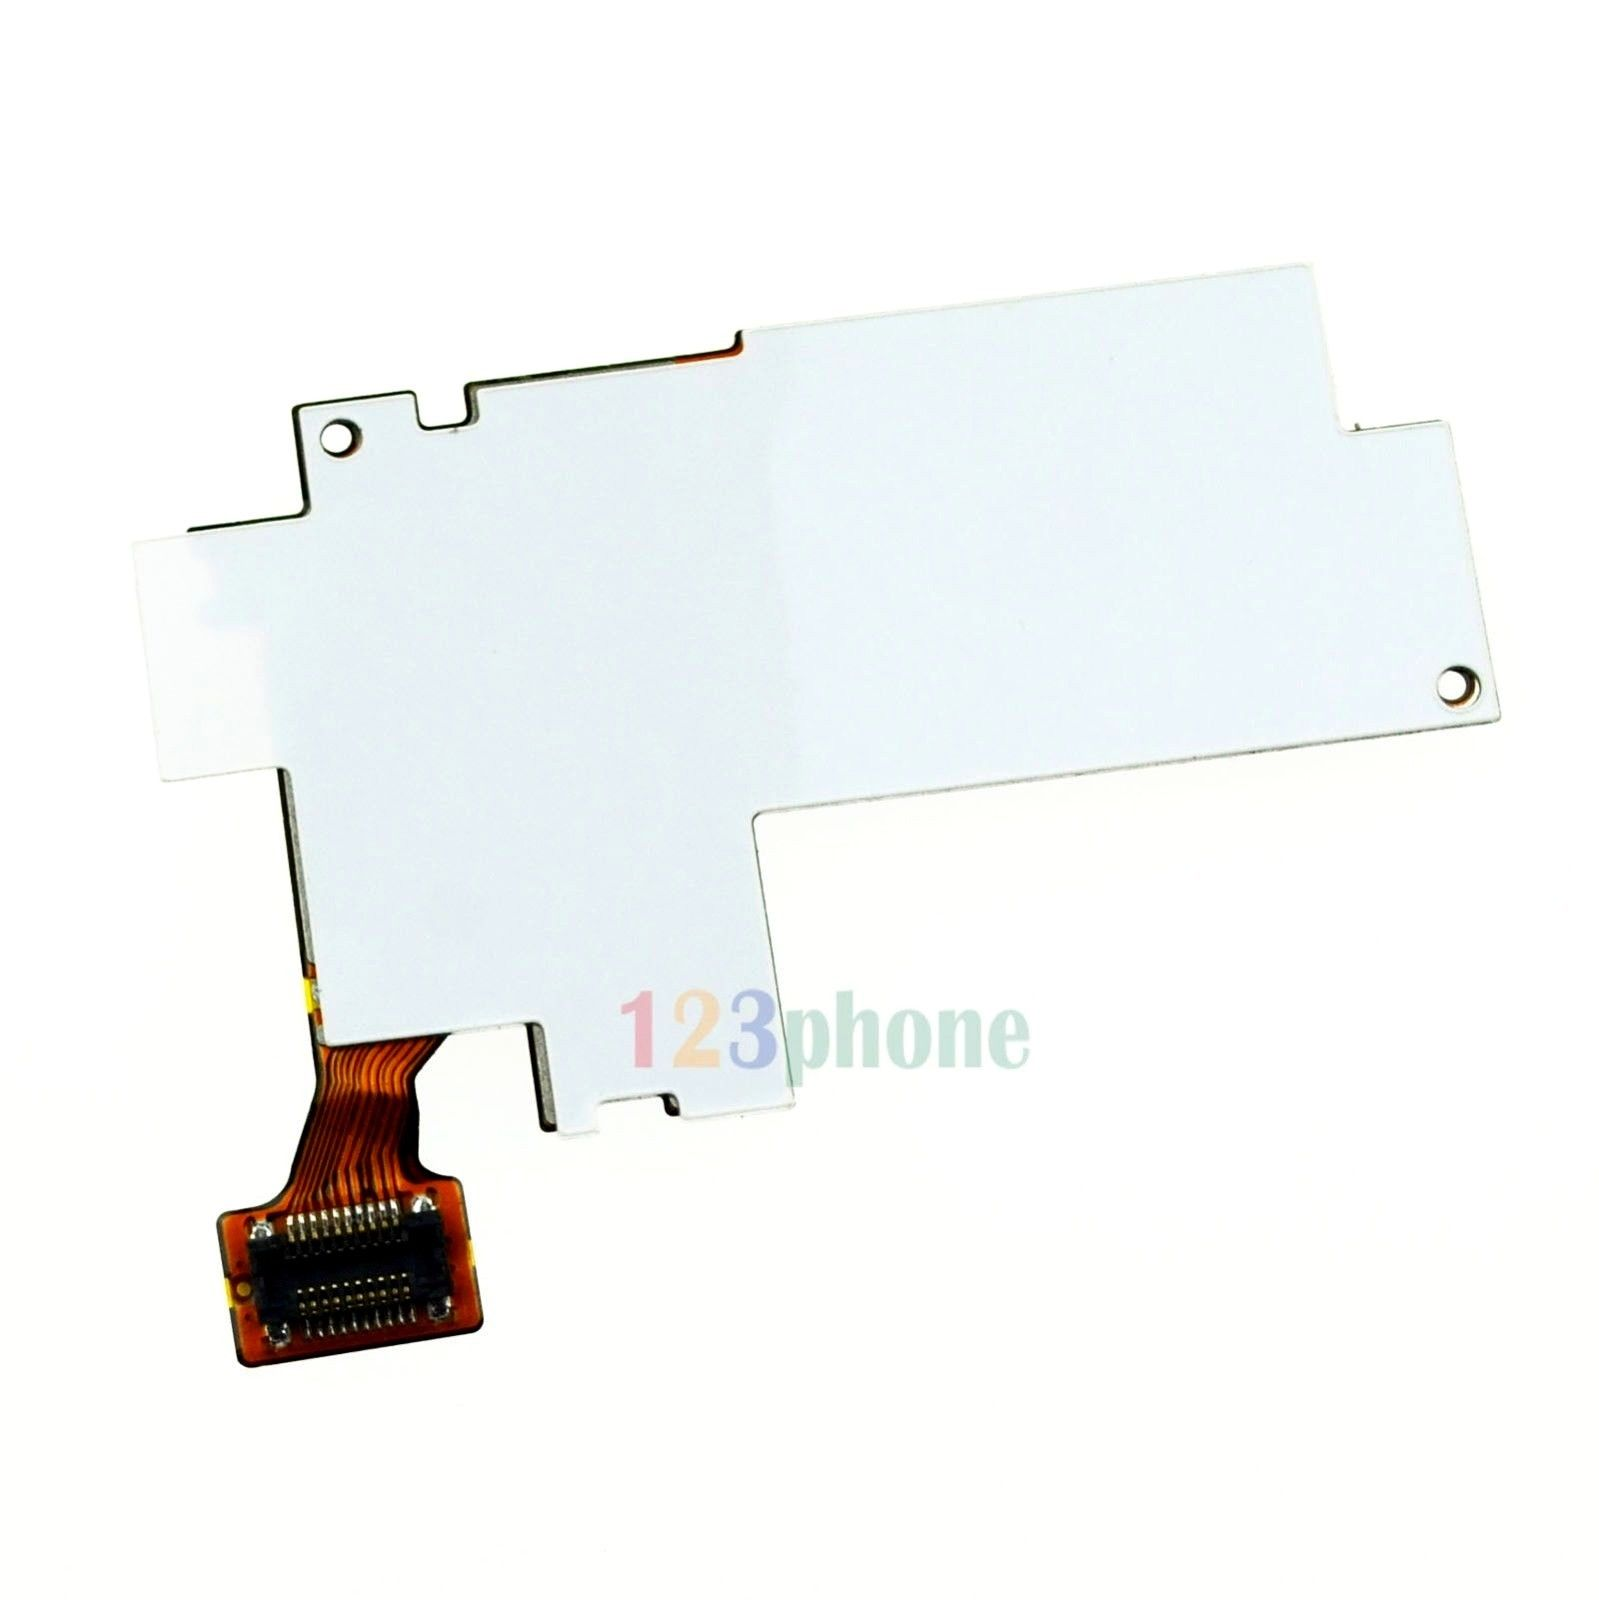 SIM + SD MEMORY SLOT HOLDER FLEX CABLE FOR SAMSUNG GALAXY